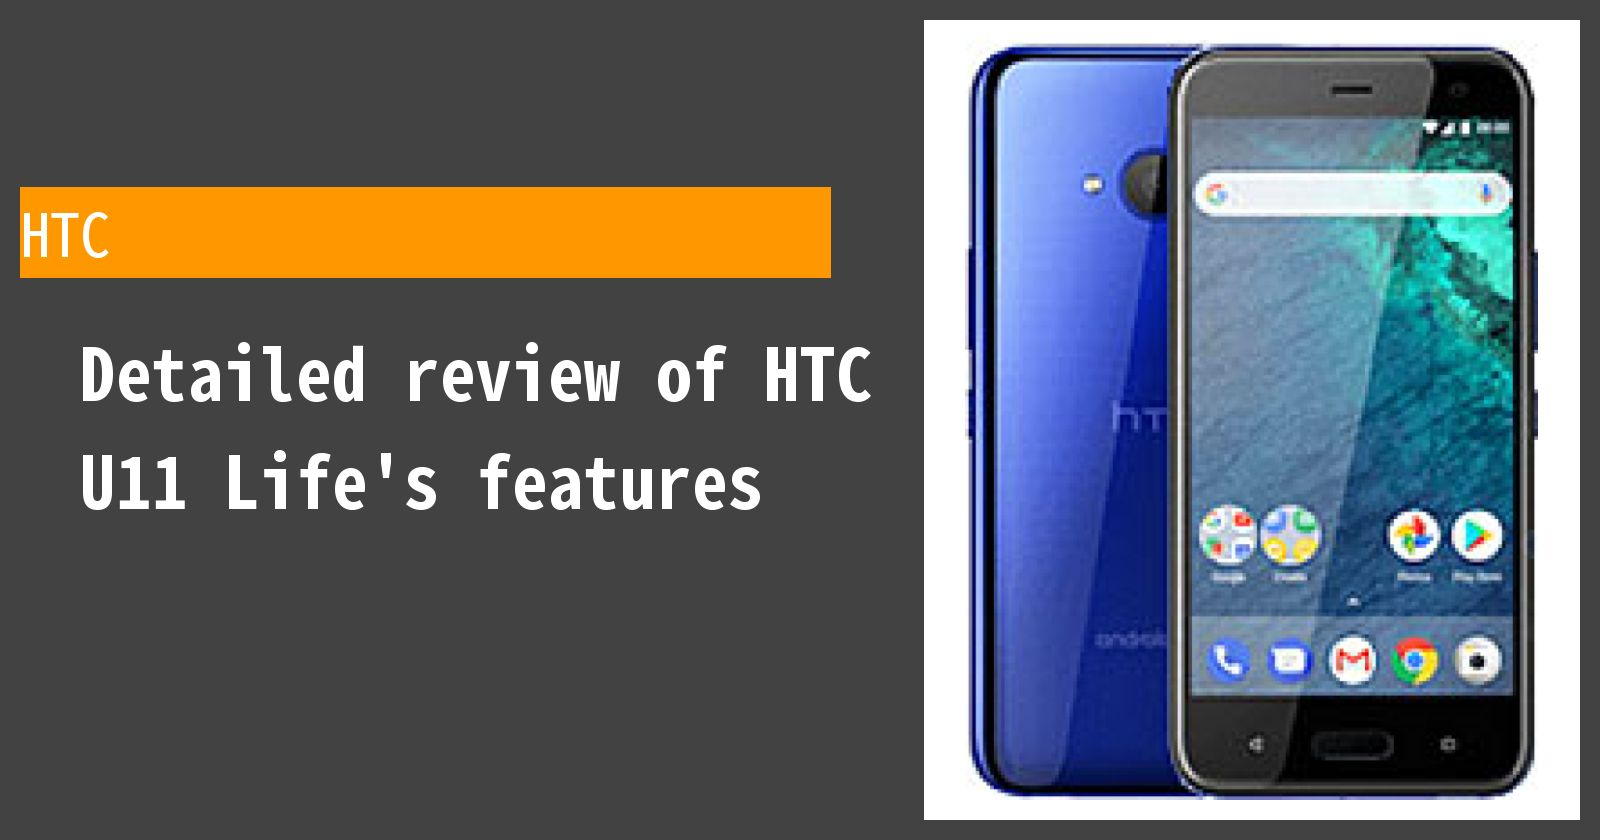 Detailed review of HTC U11 Life's features